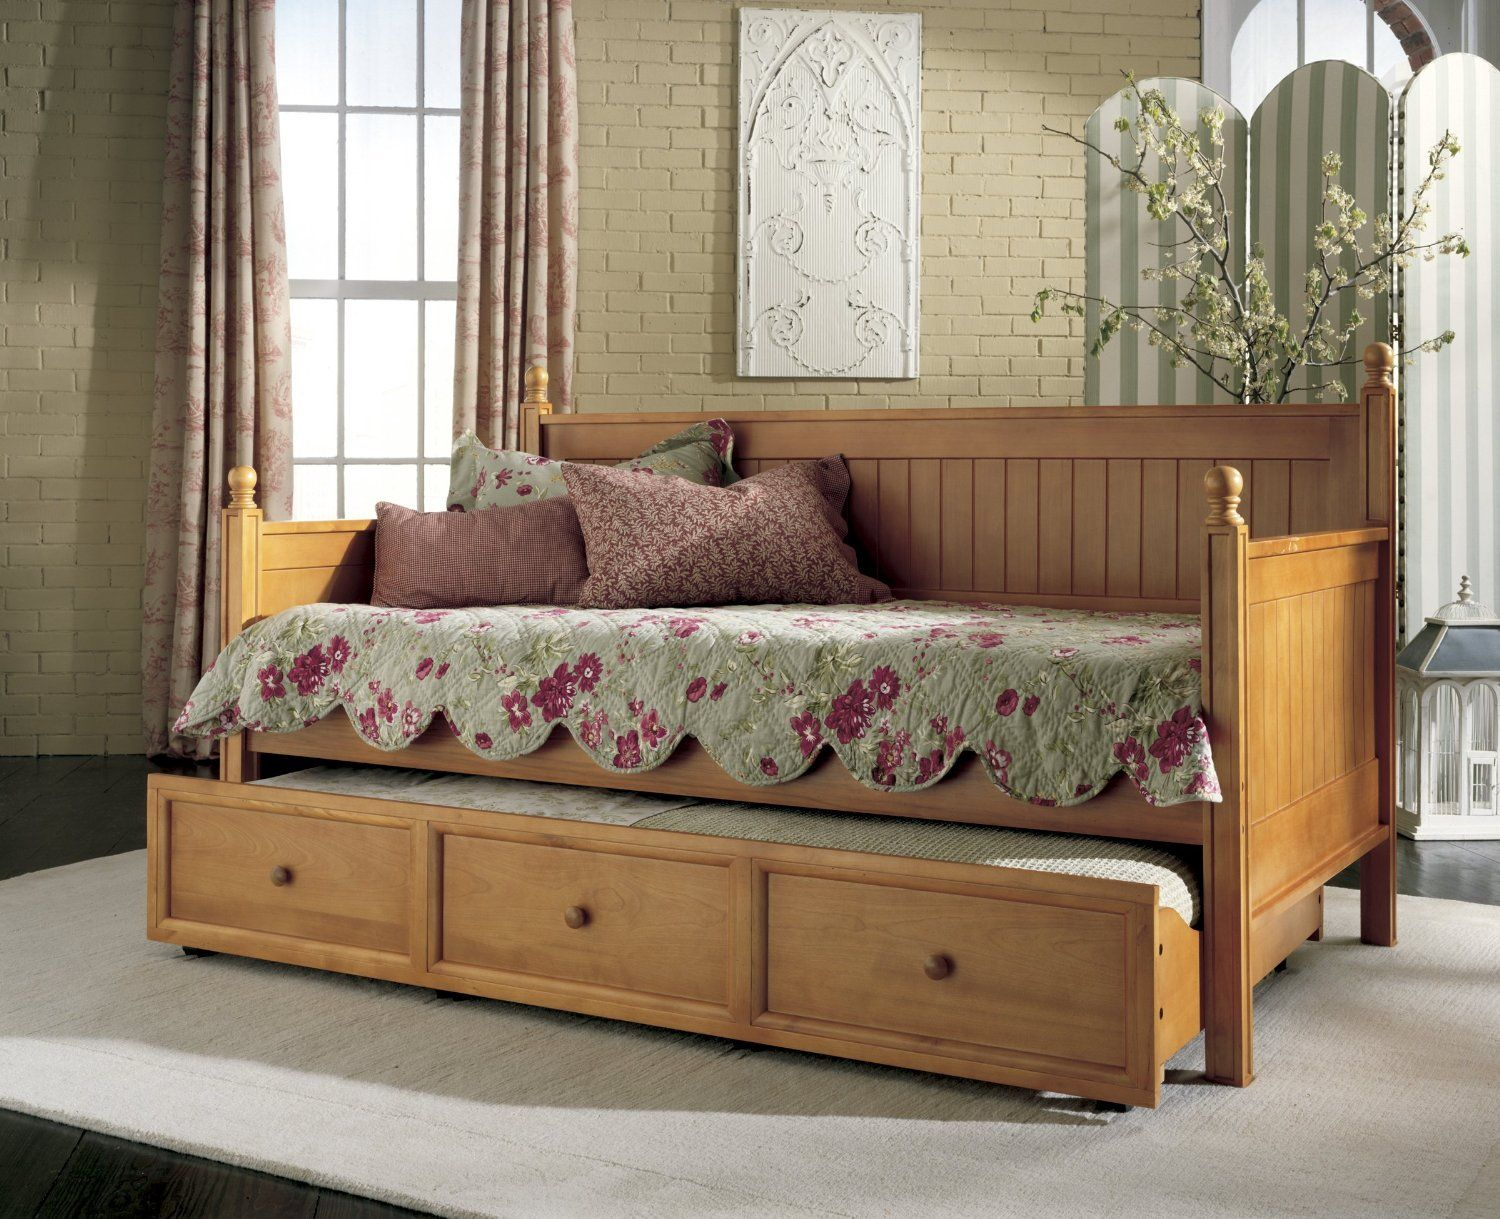 Adorable Full Size Daybed With Trundle And There Are Long